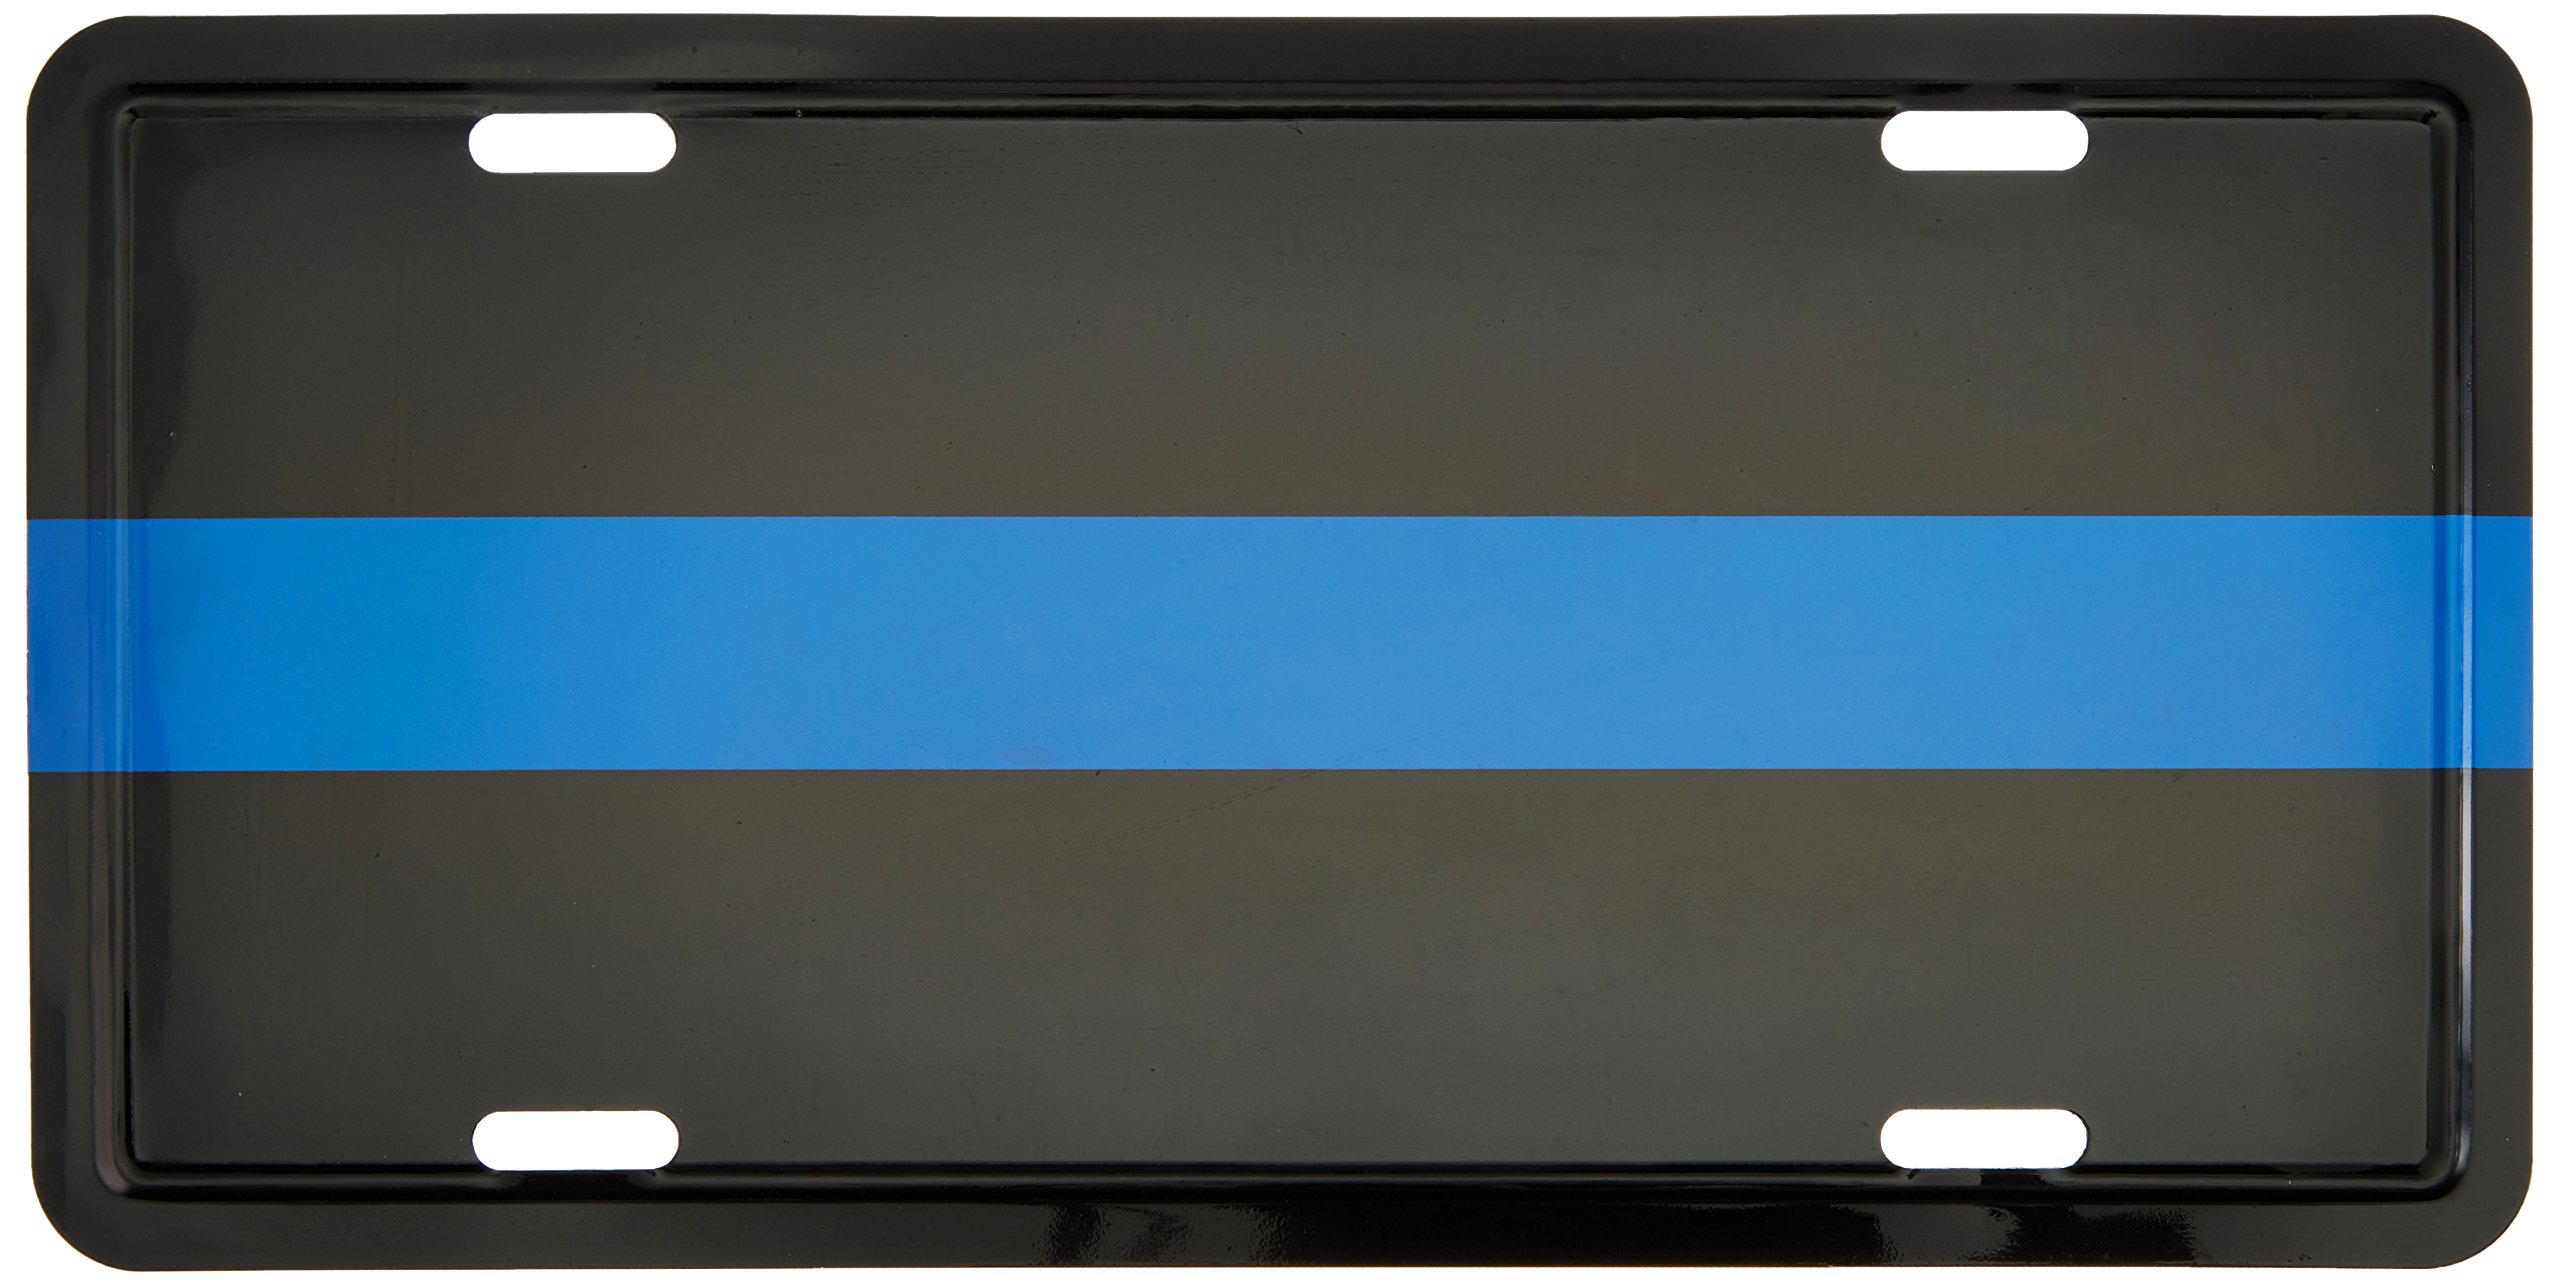 Police Thin Blue Line Metal Tag Reflective by Ruffin Flag Company (Image #1)